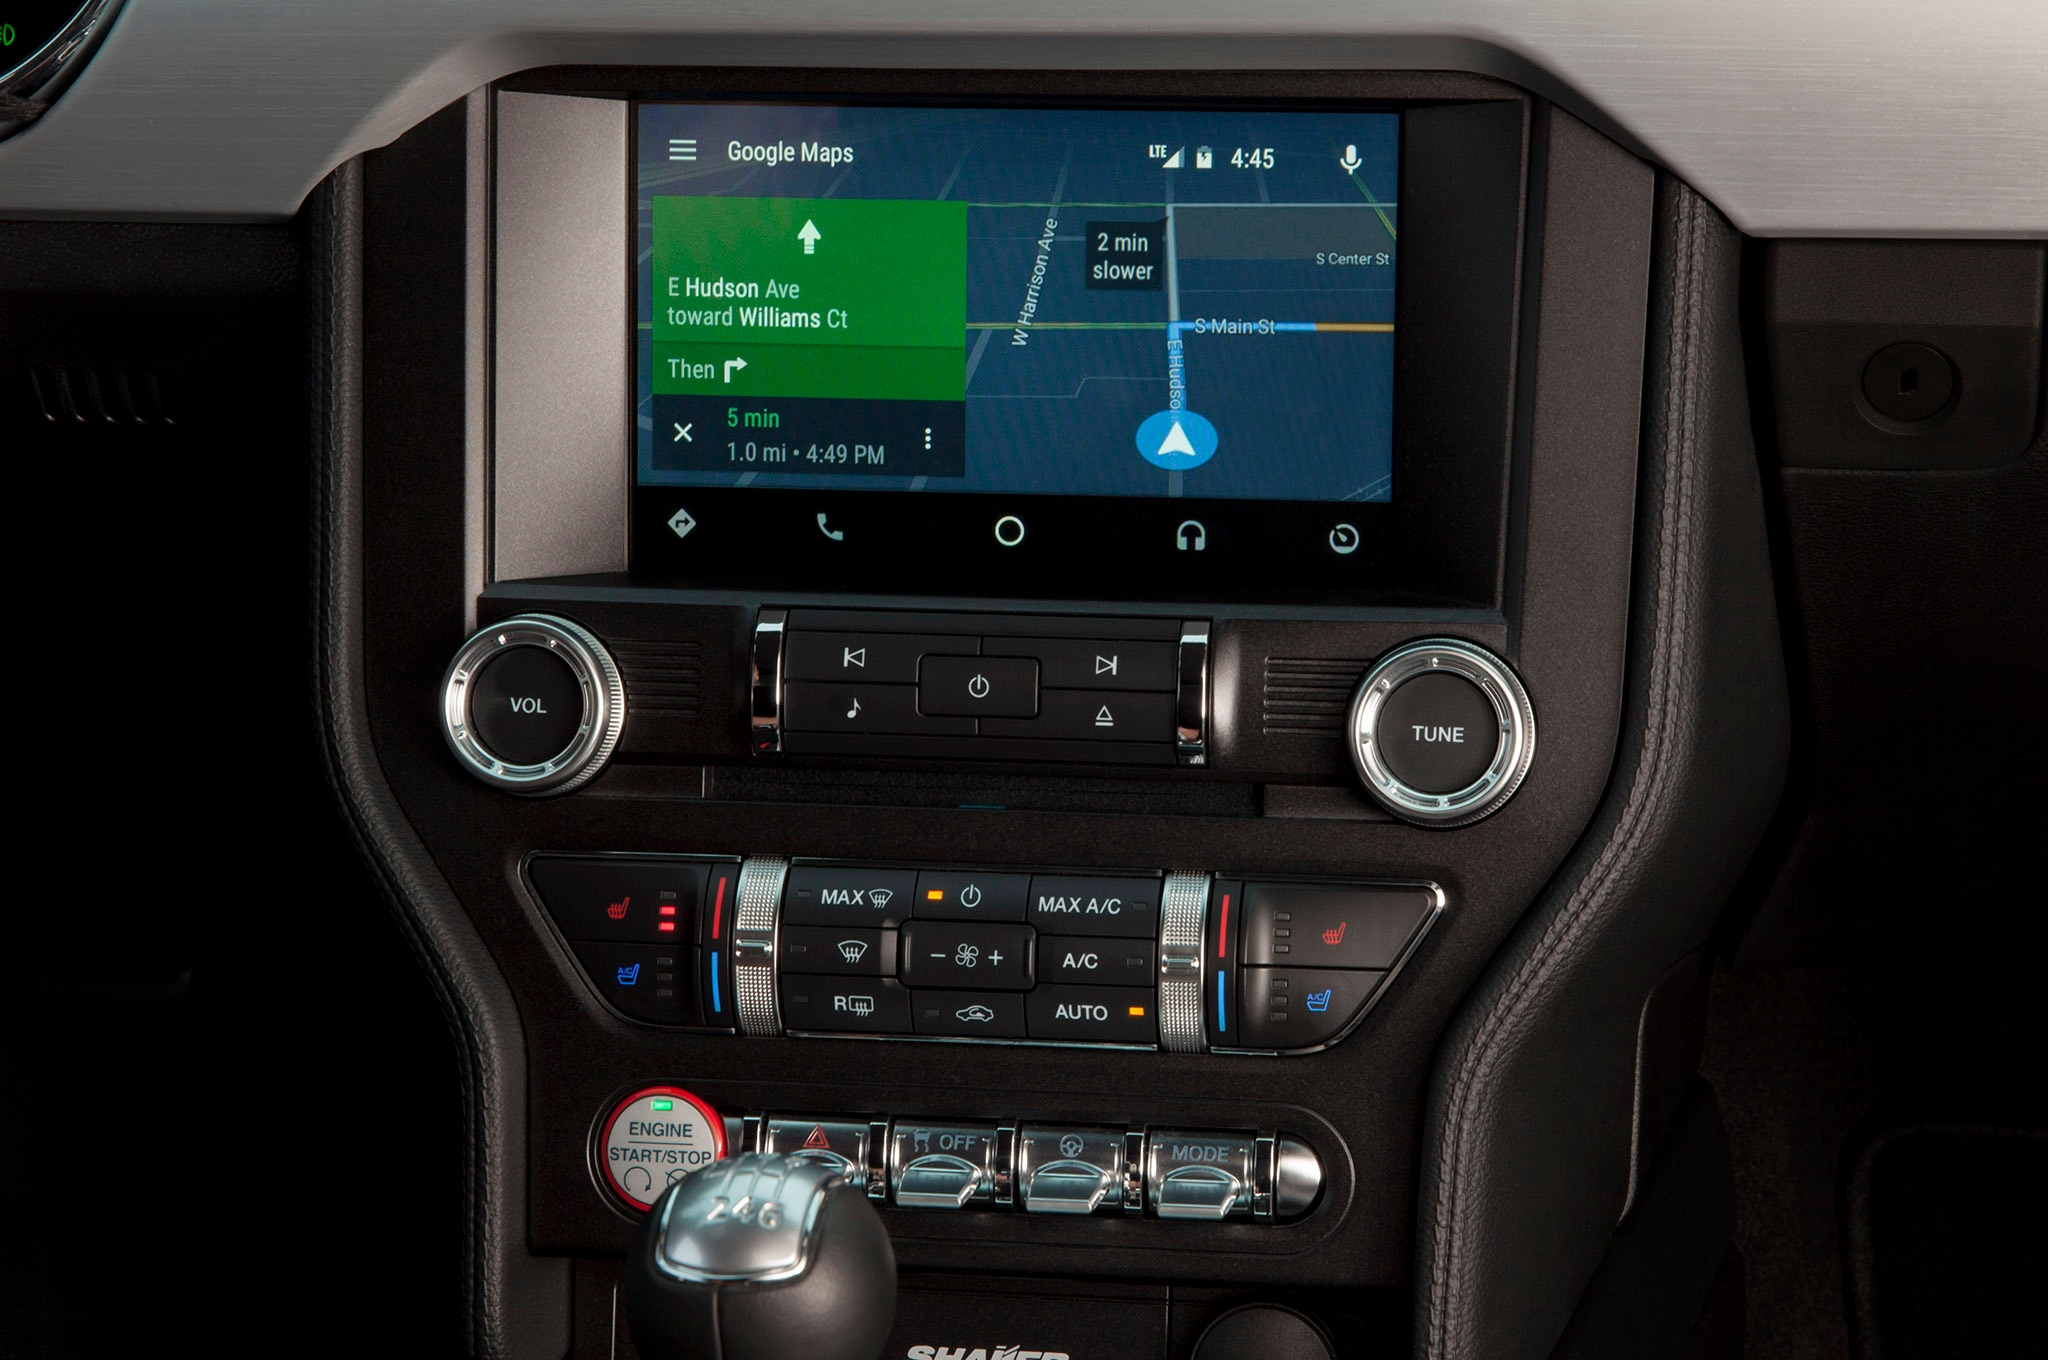 Ford Sync 3 Android Auto navigation